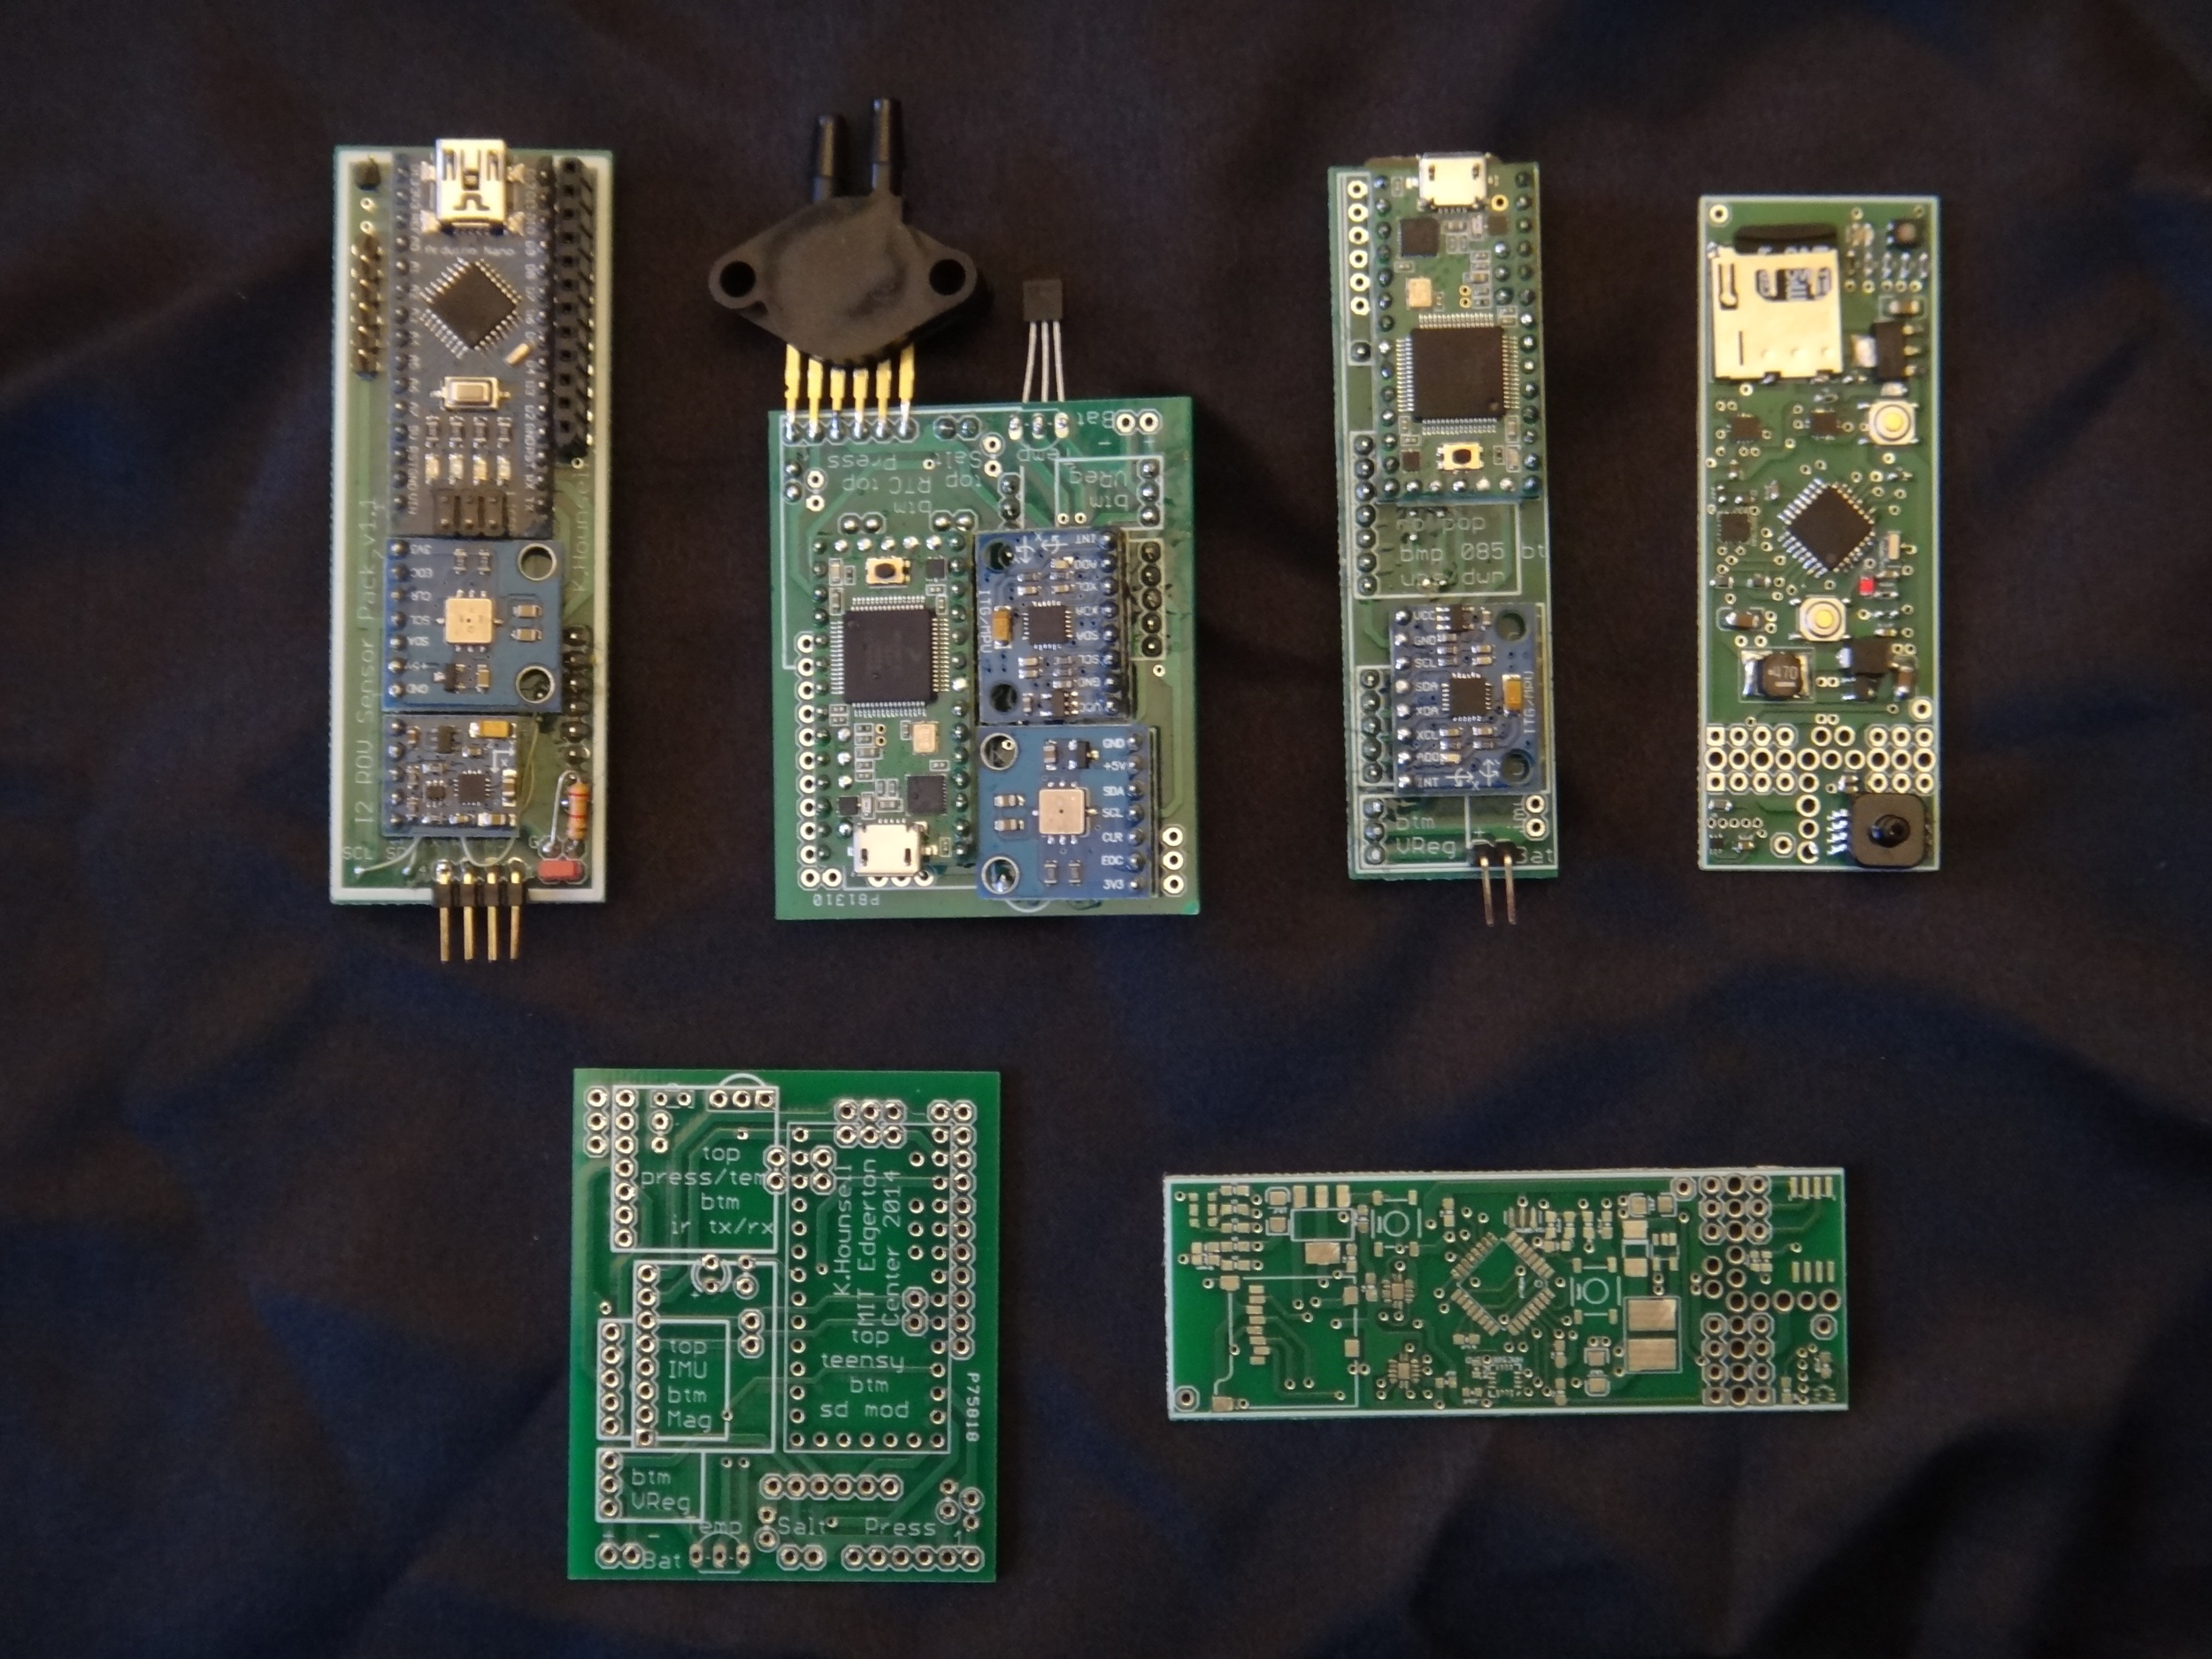 From top left: I2 ROV sensor pack (cancelled), General datalogger Rev 1  (limited run), General datalogger Rev 1 slim form factor (limited run), Seaglide datalogger (production).